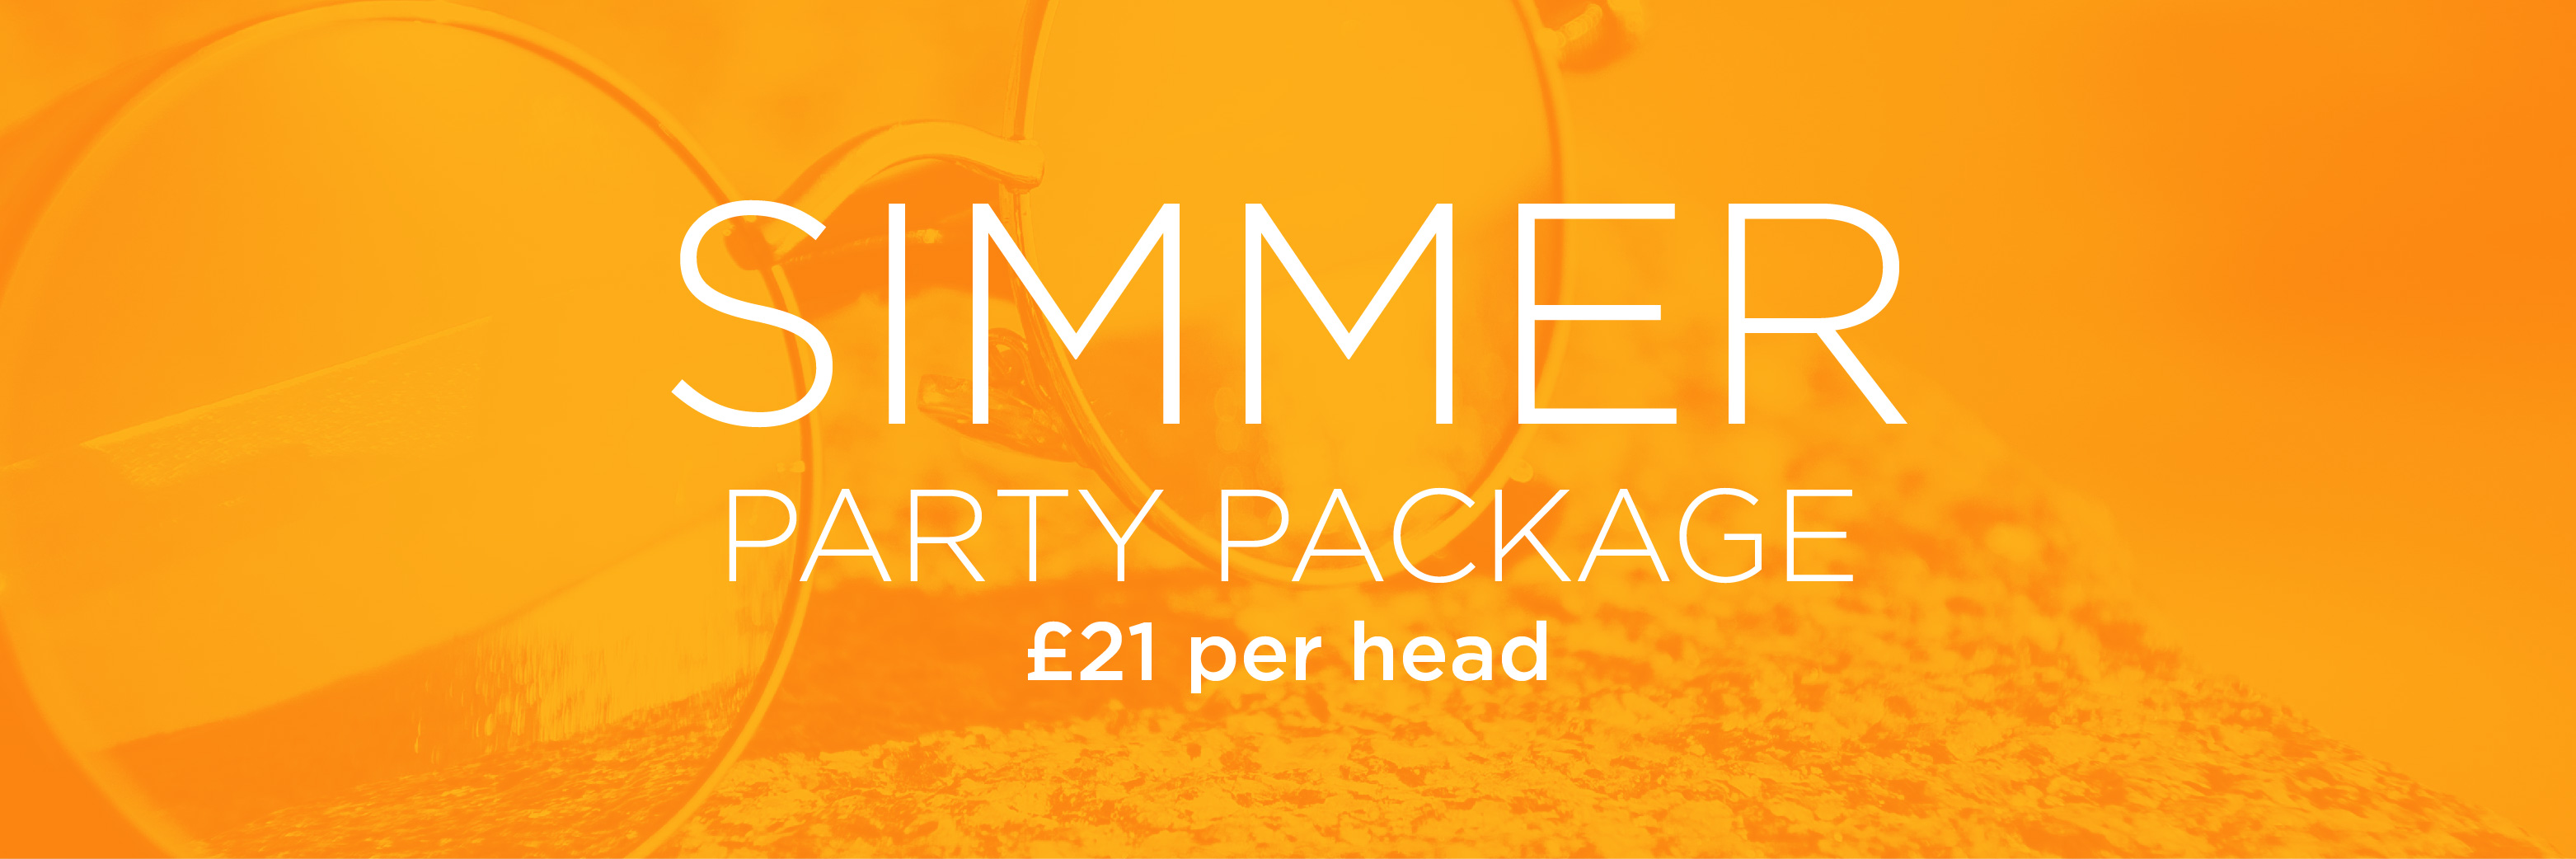 summer party package bristol